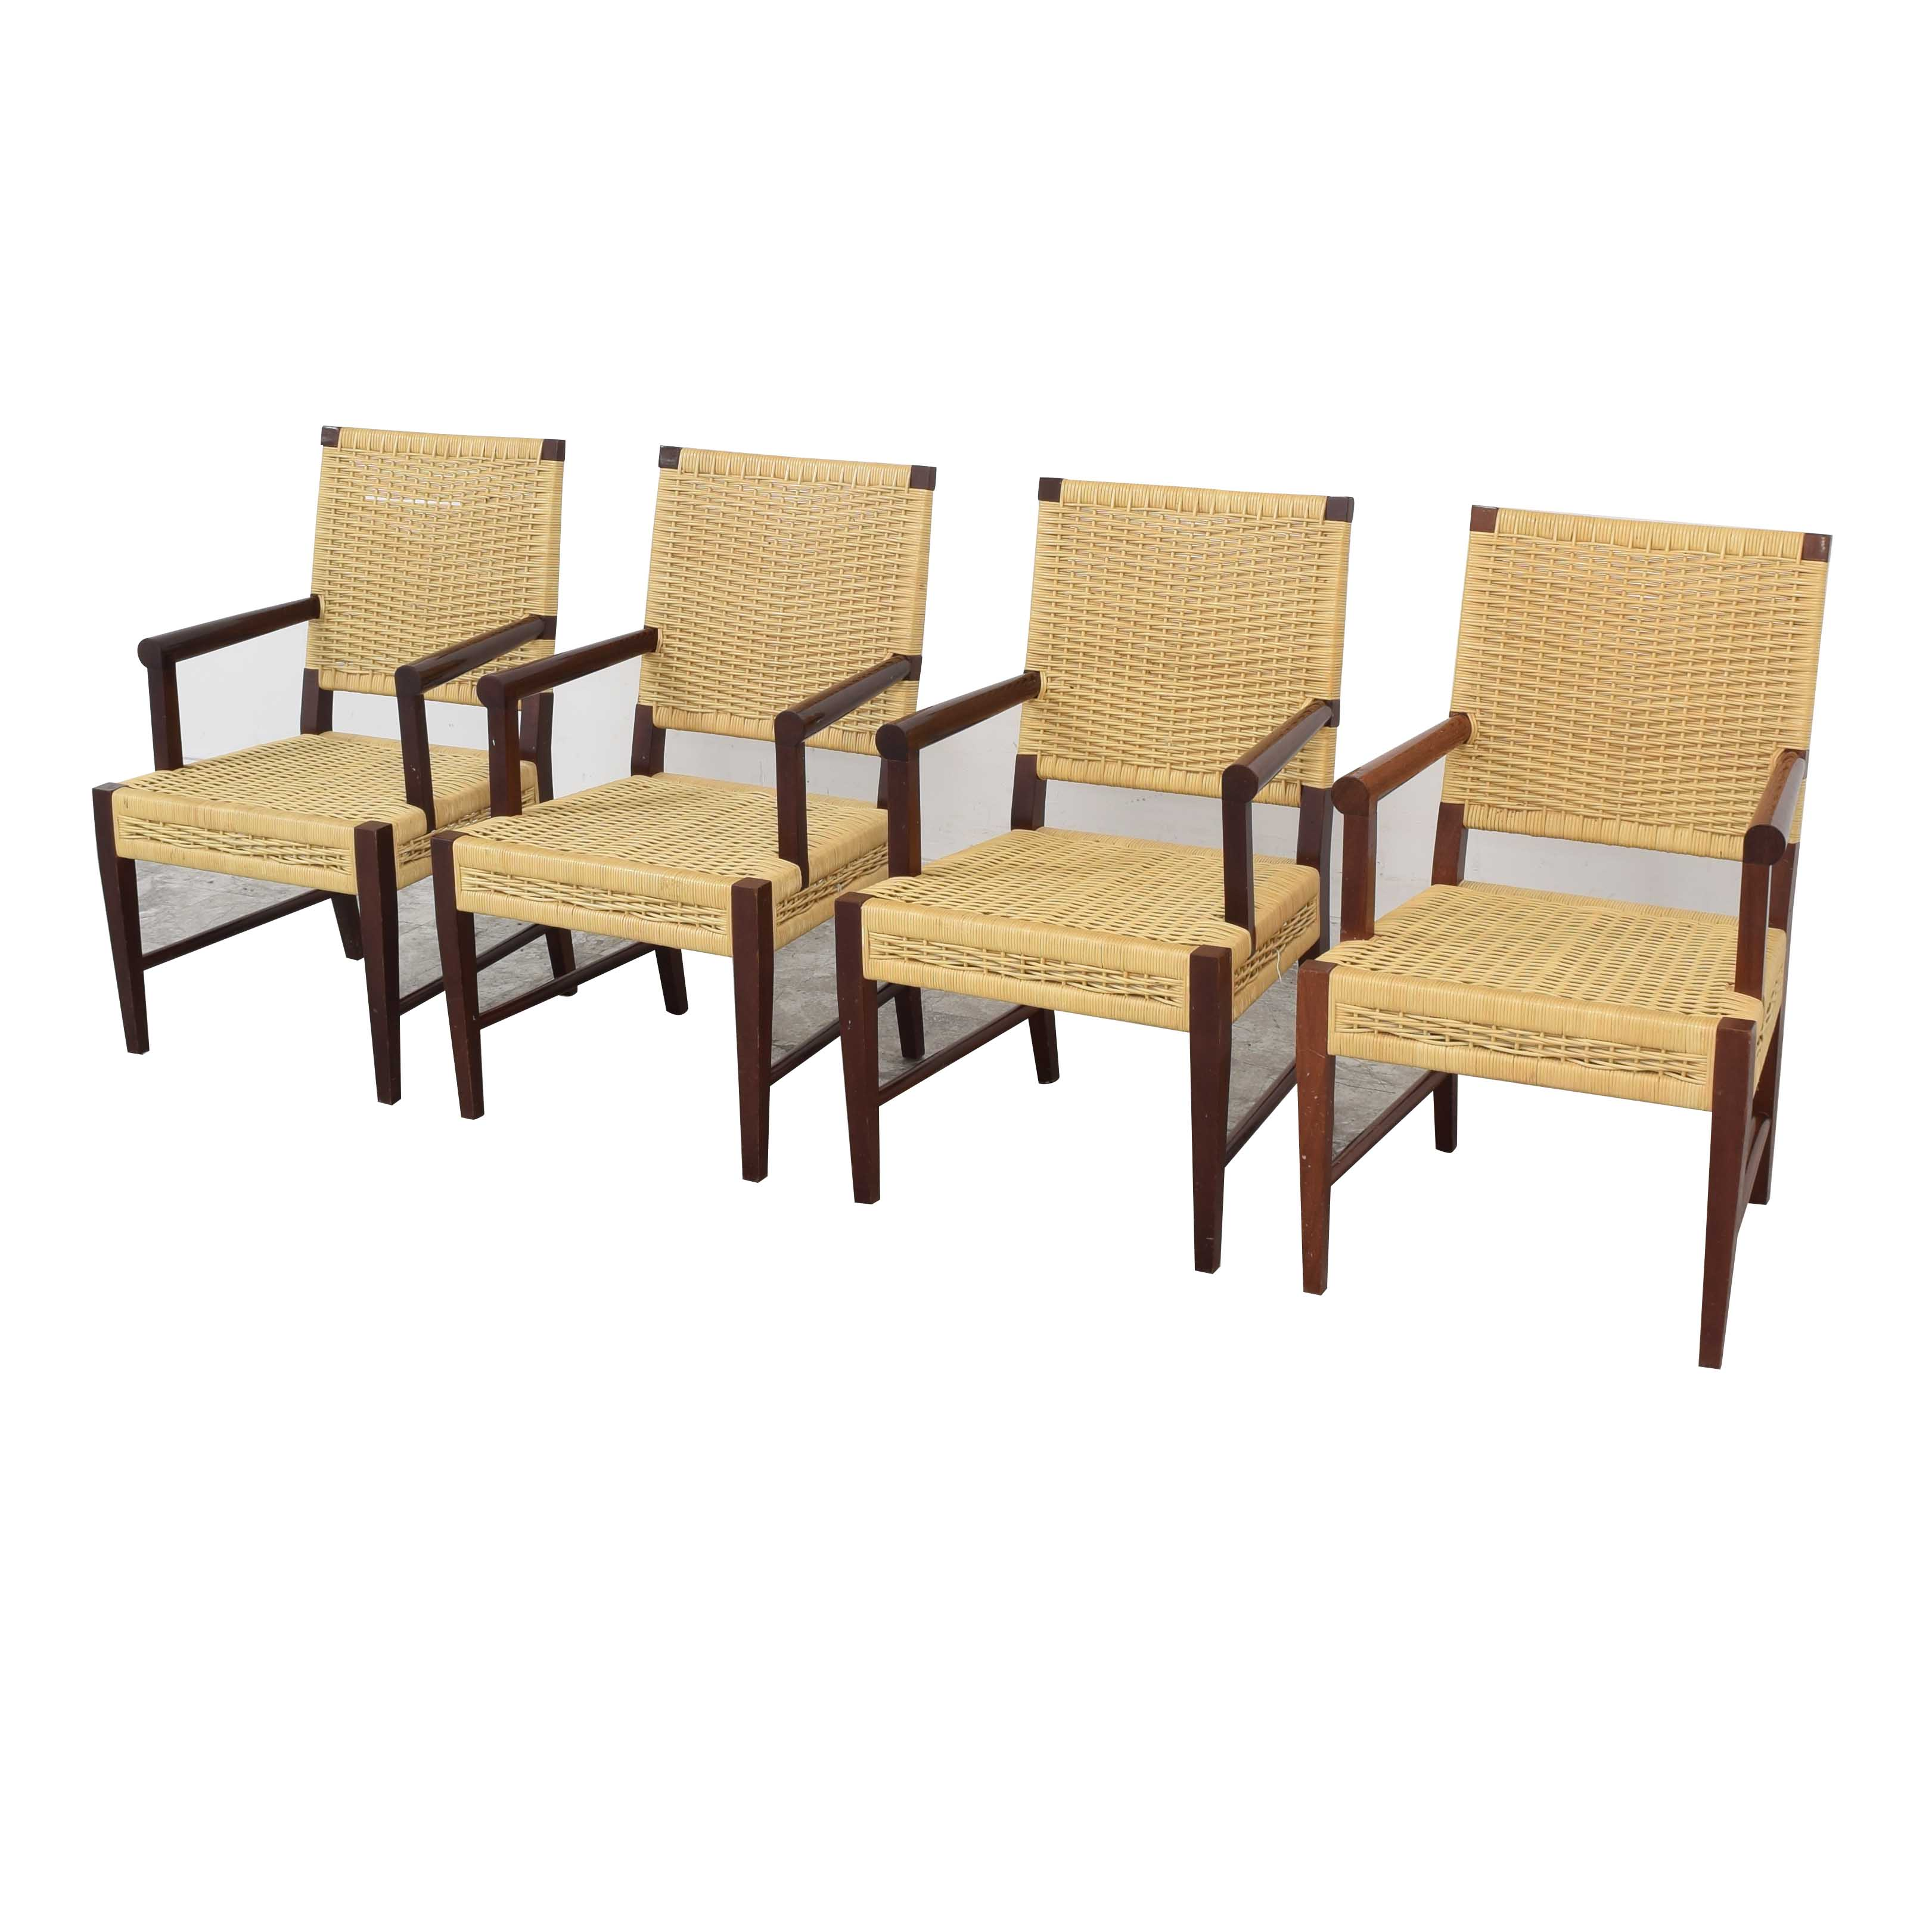 Donghia Donghia Dining Chairs in Merbau Wood with Raffia Weaving light and dark brown